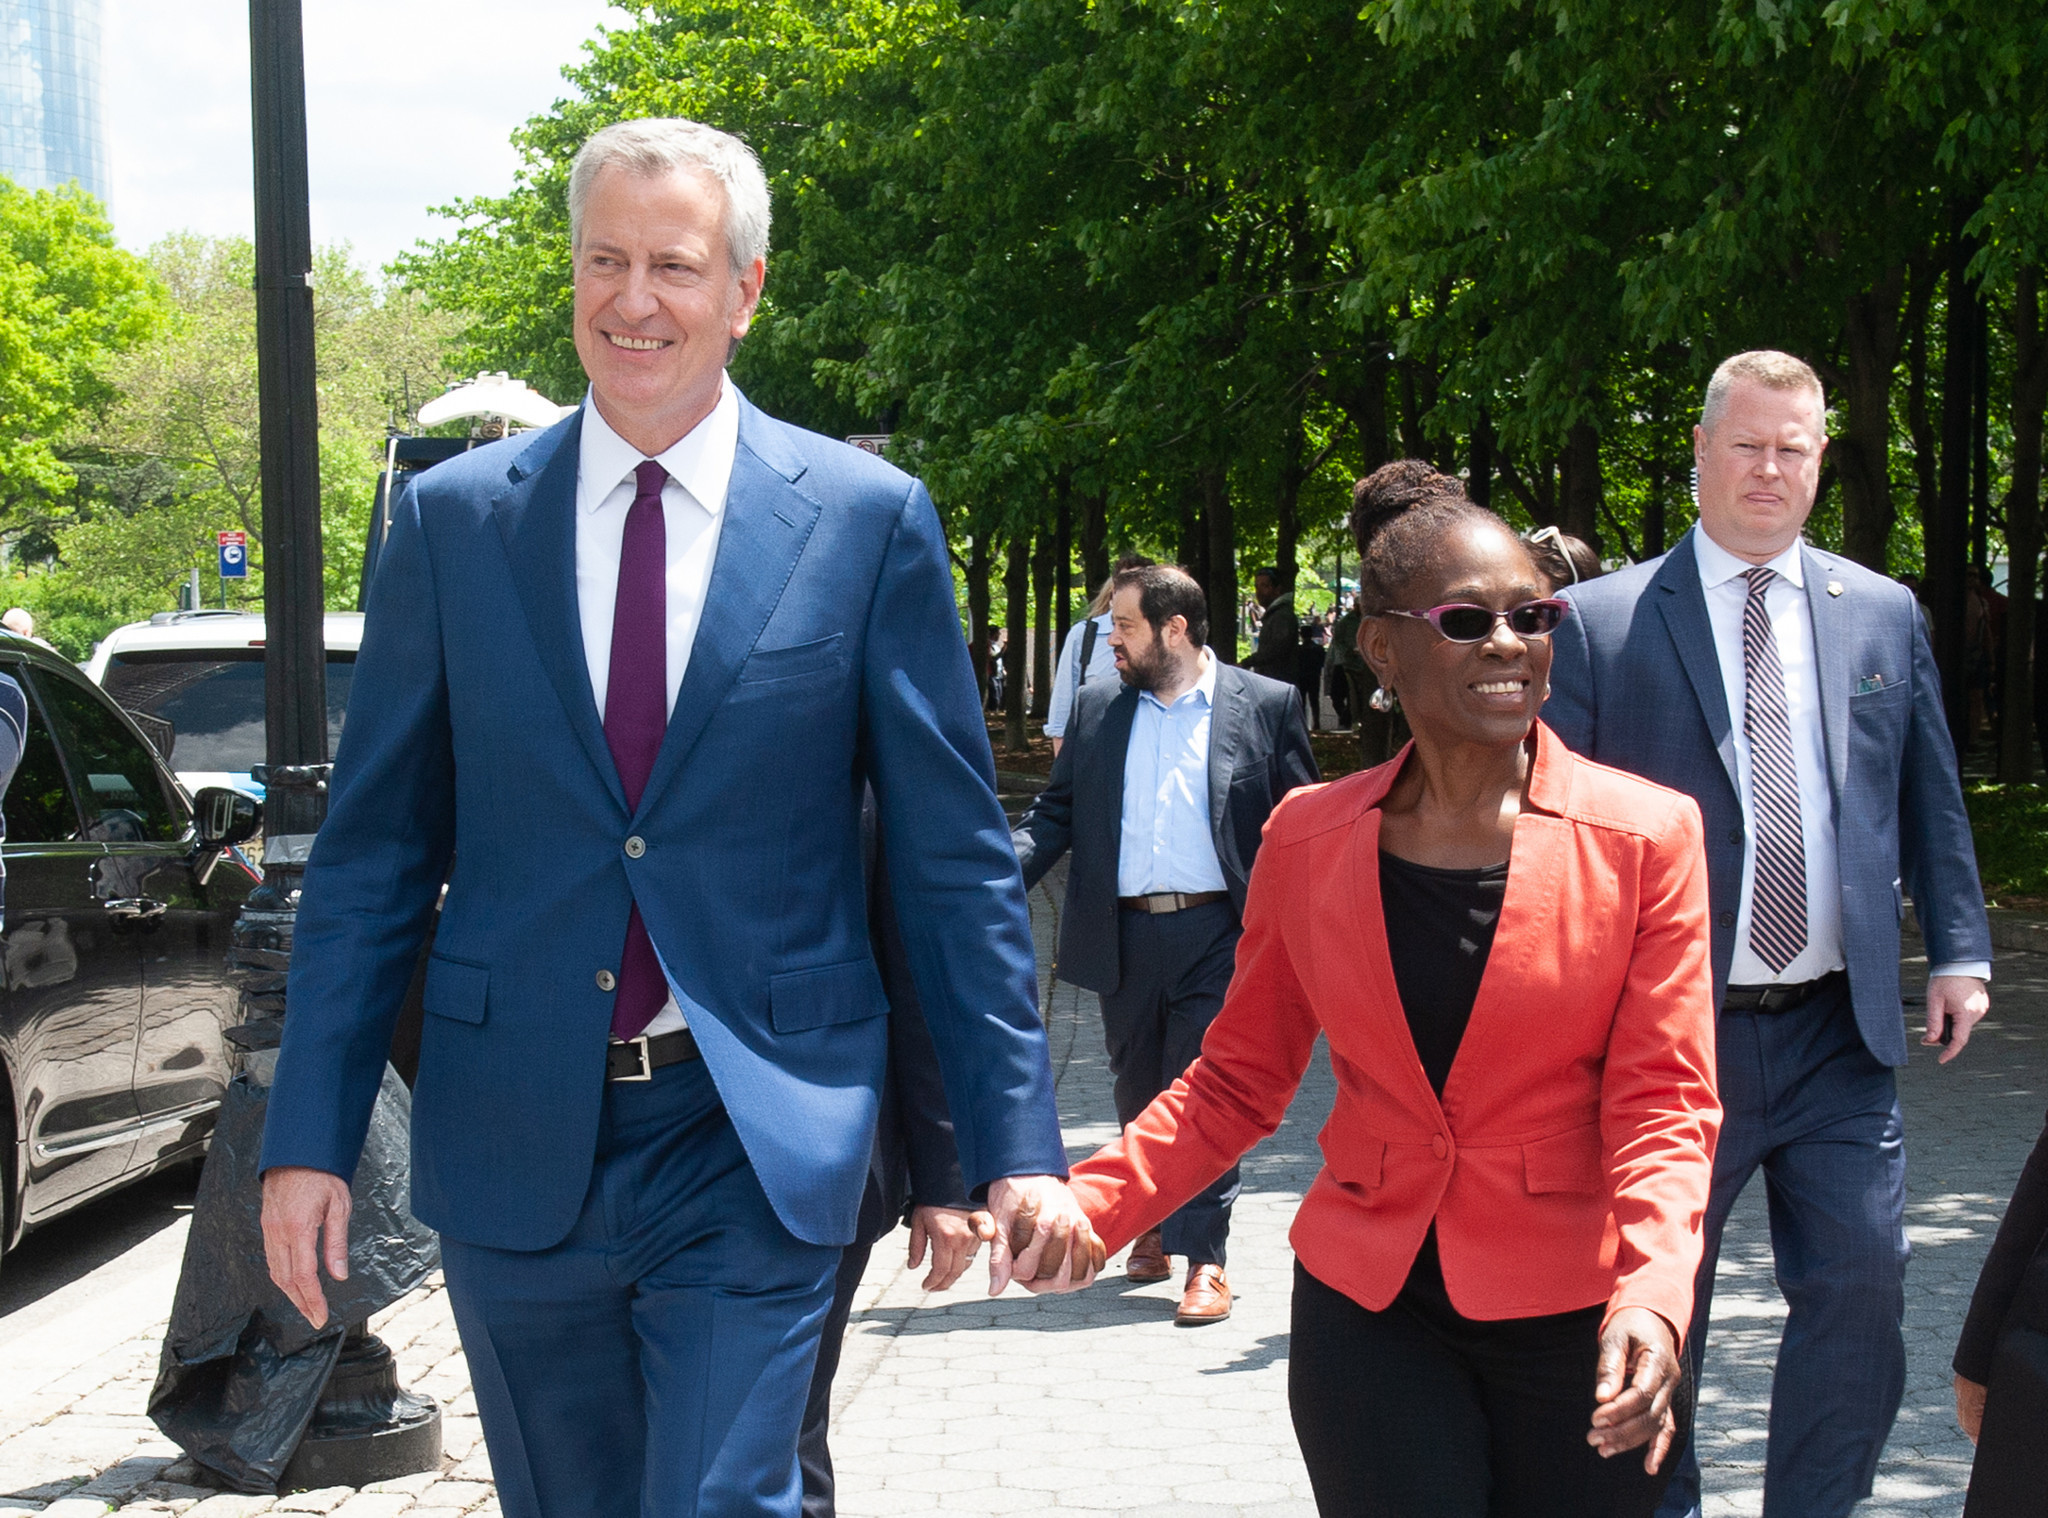 Mayor de Blasio is pushing for NYC's First Lady Chirlane McCray to become Brooklyn borough president, insiders say